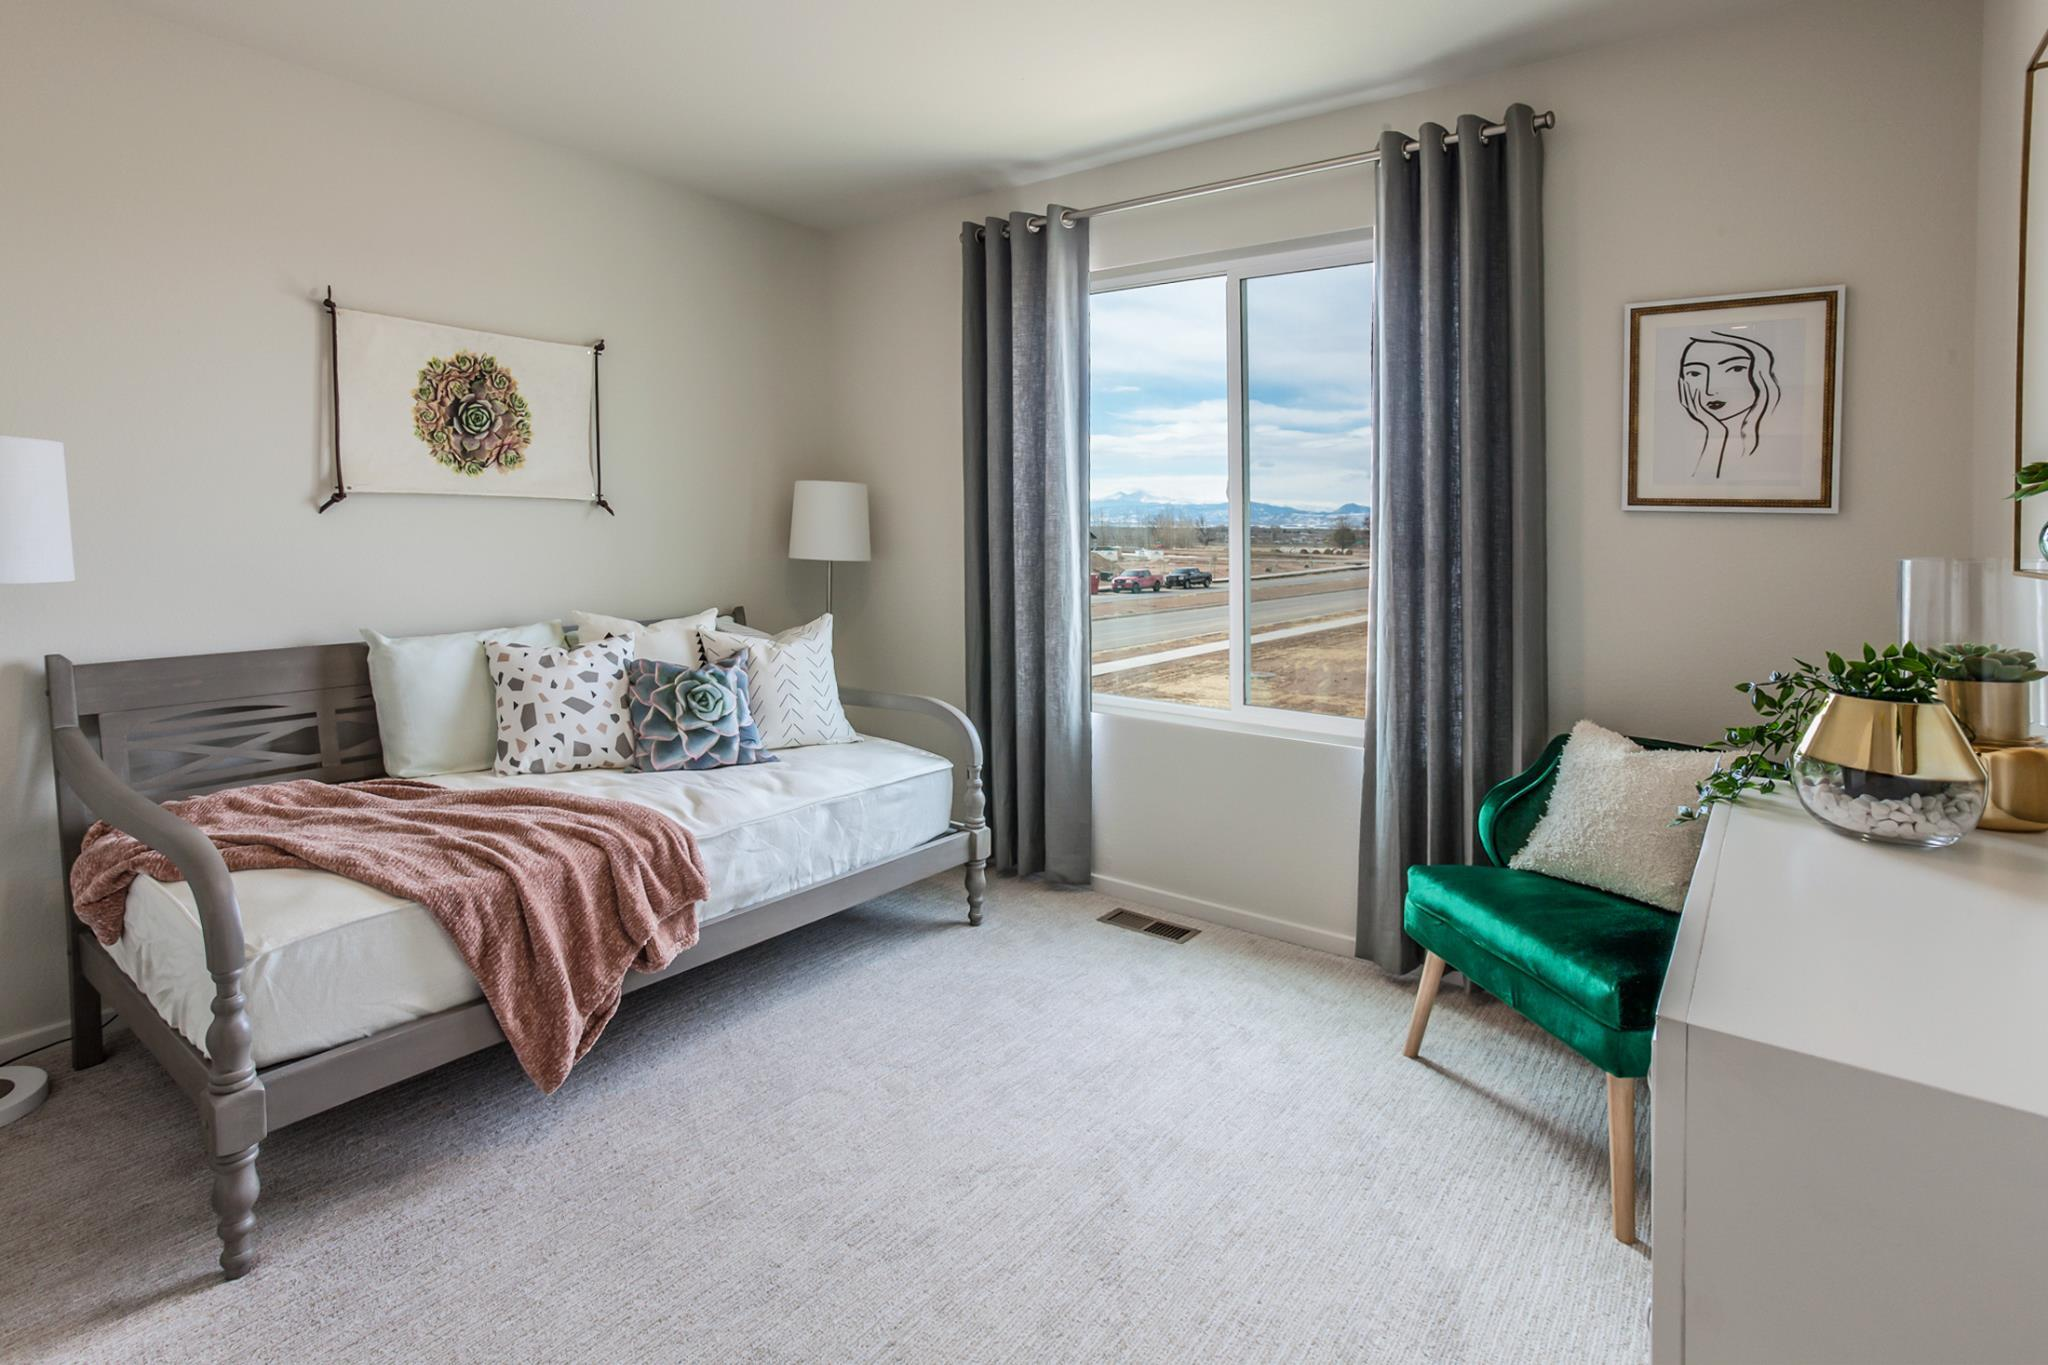 Bedroom featured in the Akin By Hartford Homes in Fort Collins-Loveland, CO